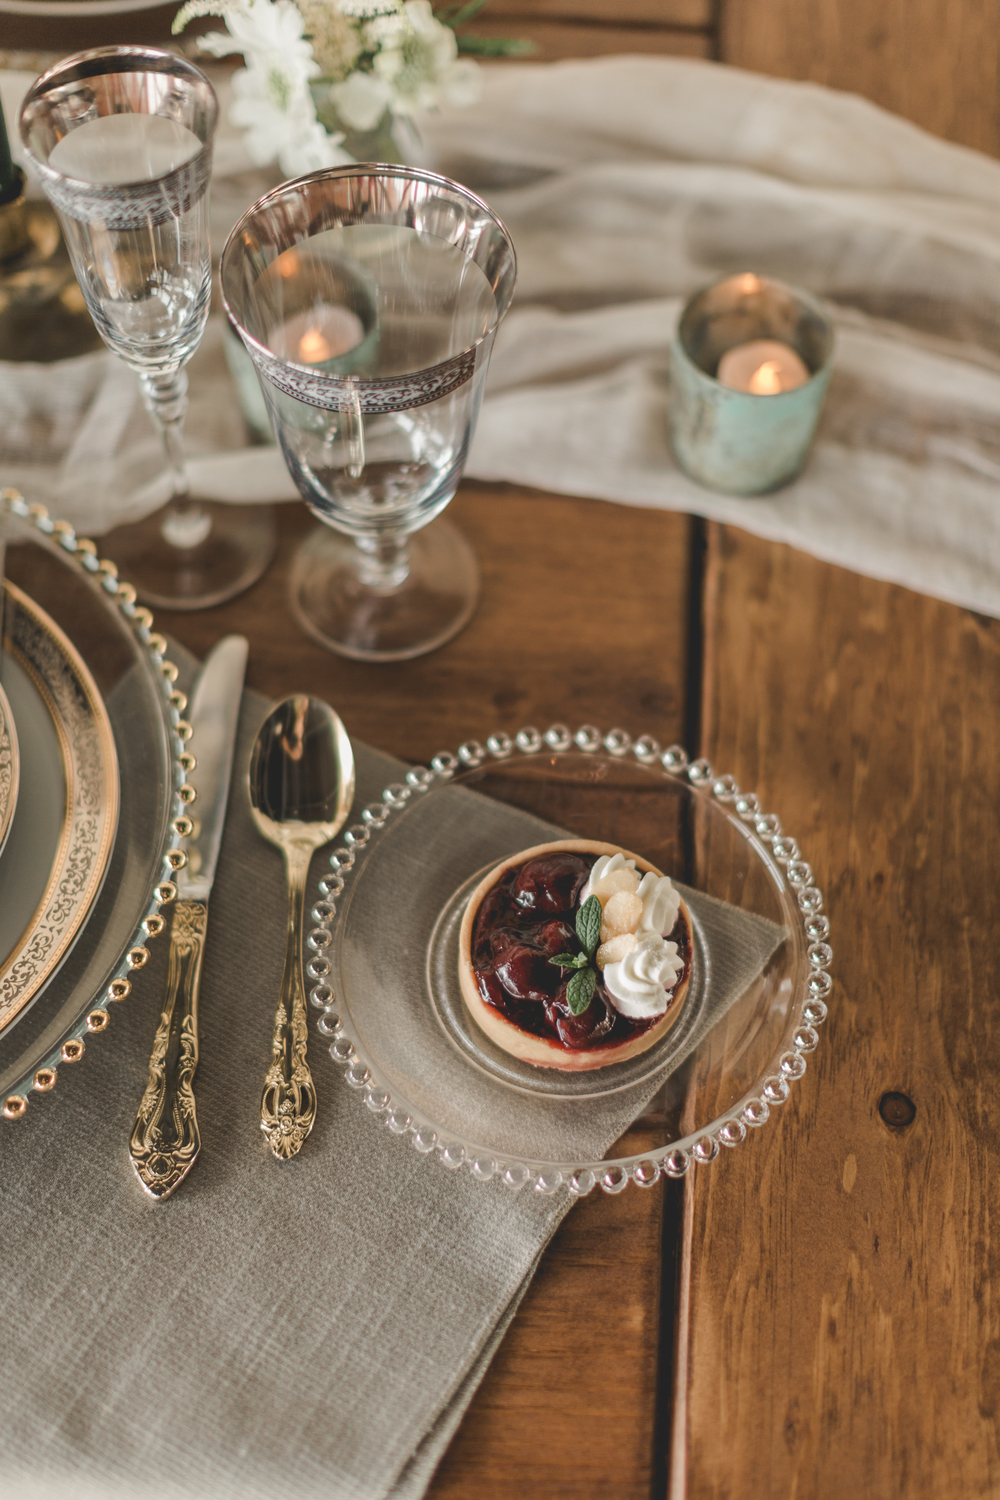 Whaling_Museum_Styled_Shoot_food_4-19-16-25.jpg